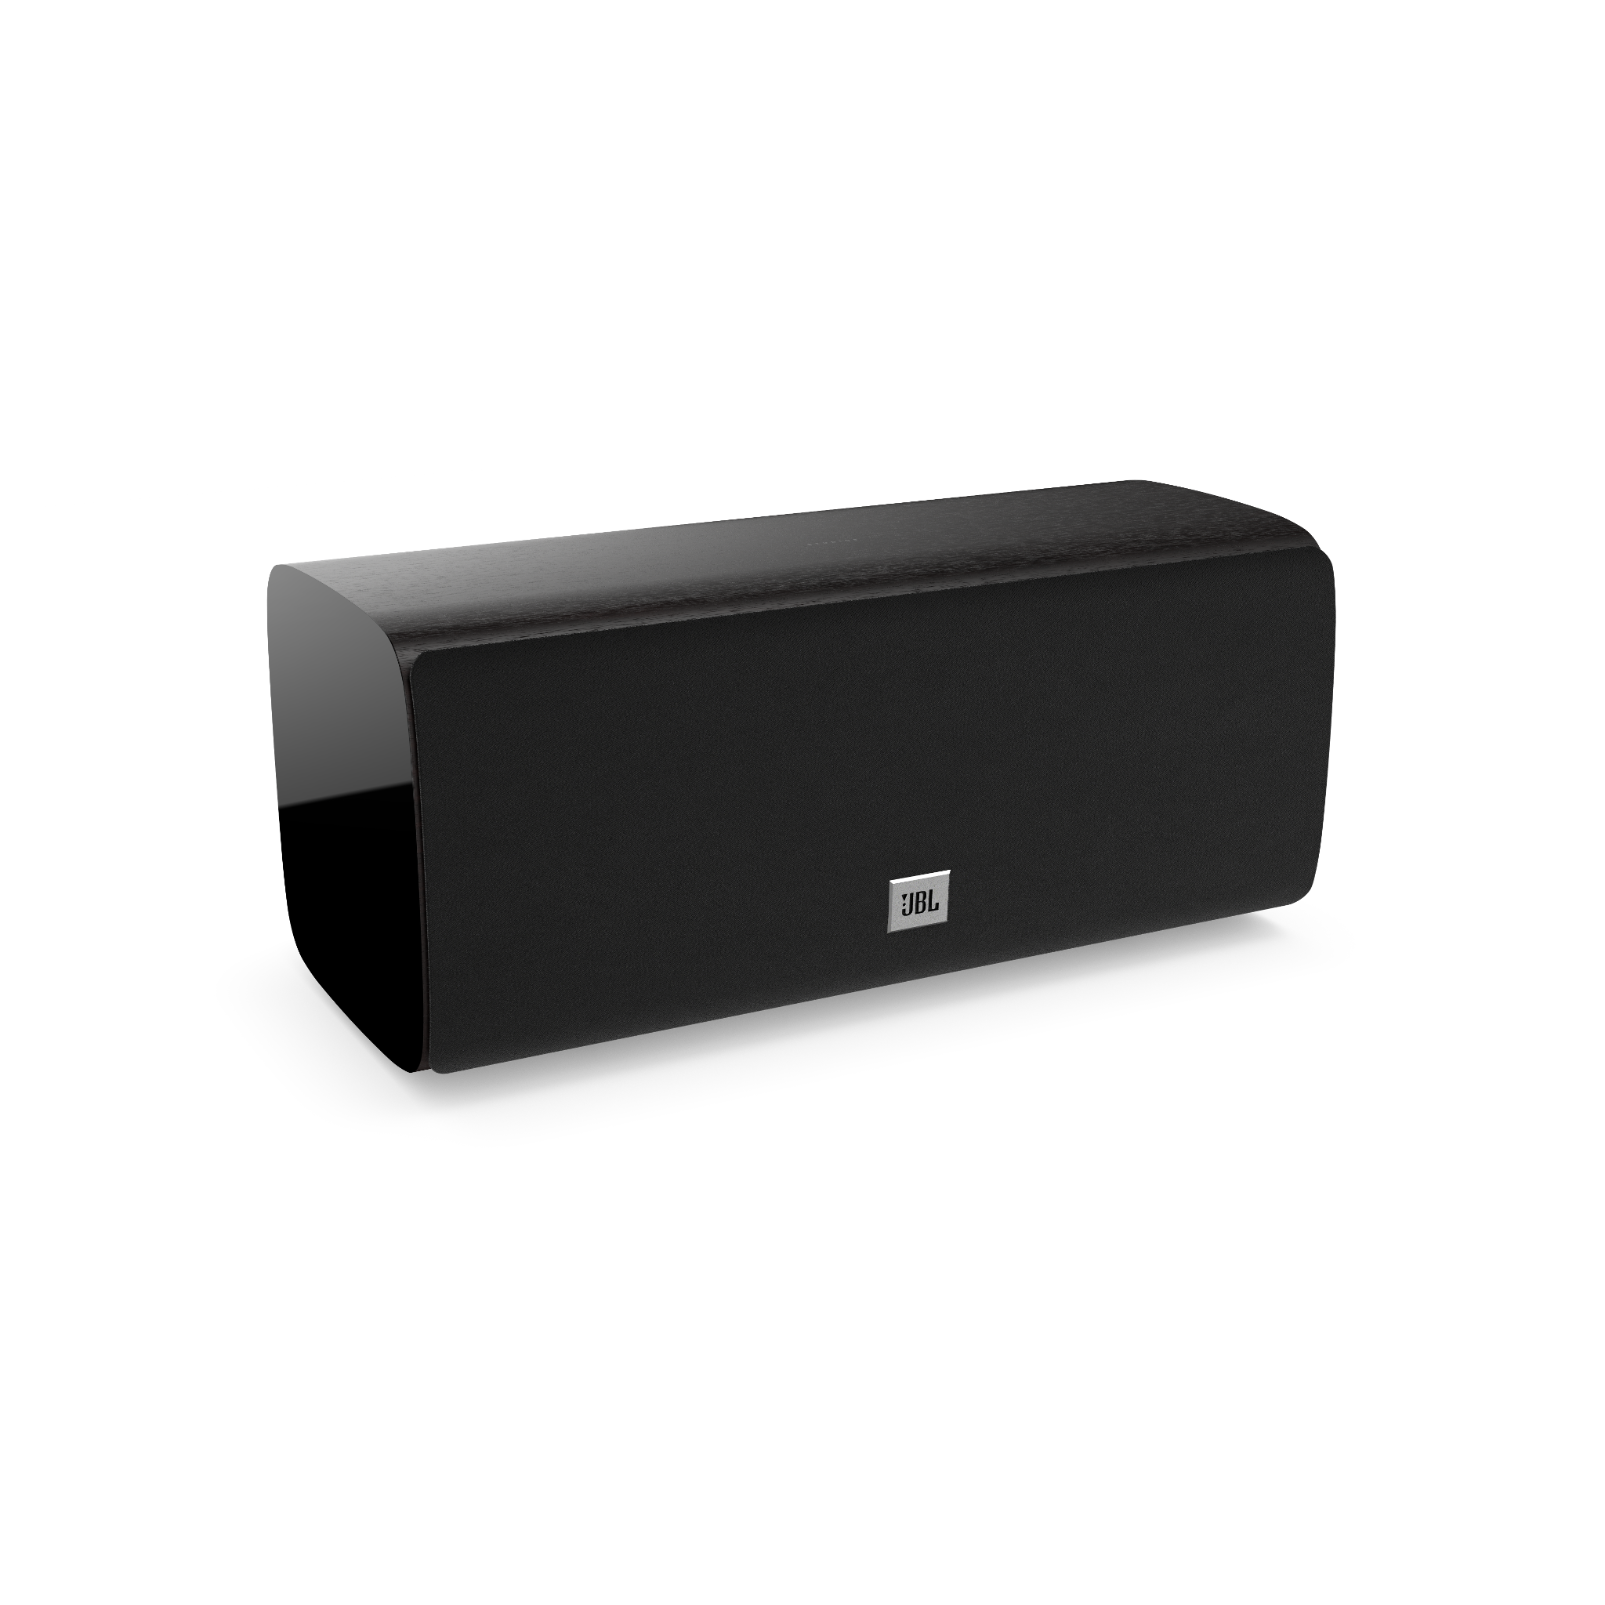 JBL STUDIO 625C - Dark Wood - Home Audio Loudspeaker System - Hero